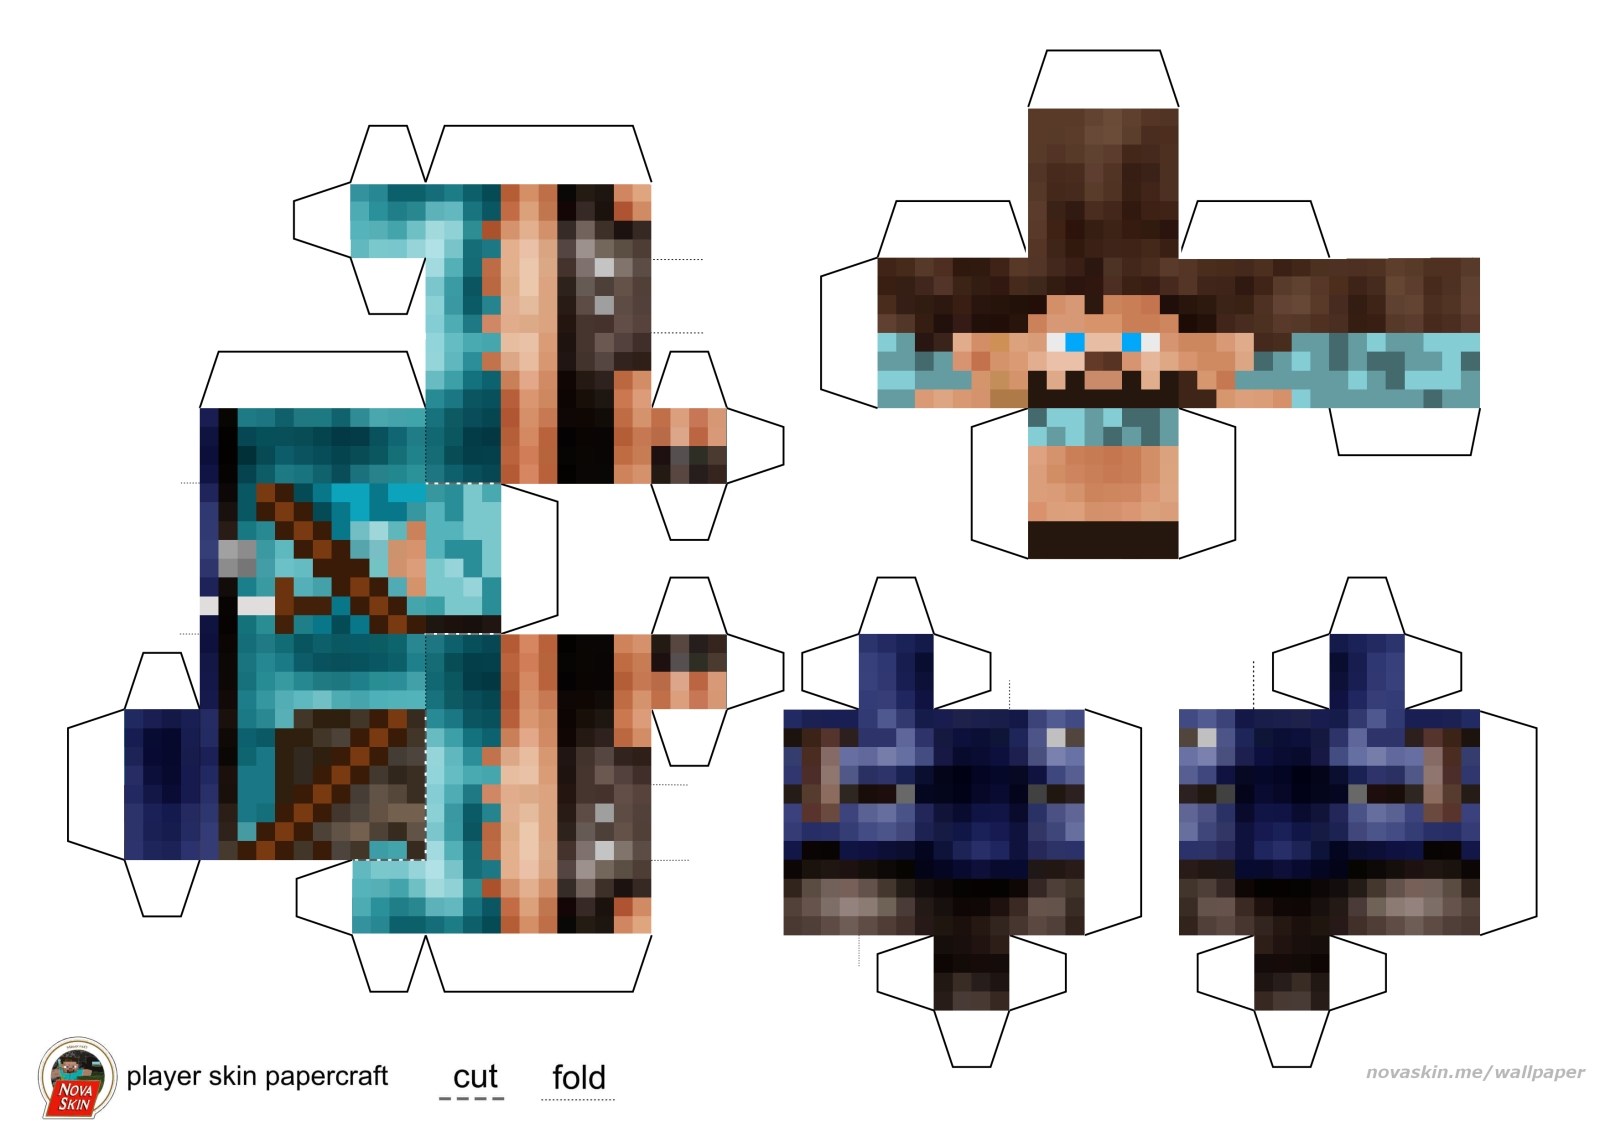 nova skin minecraft wallpaper generator with custom